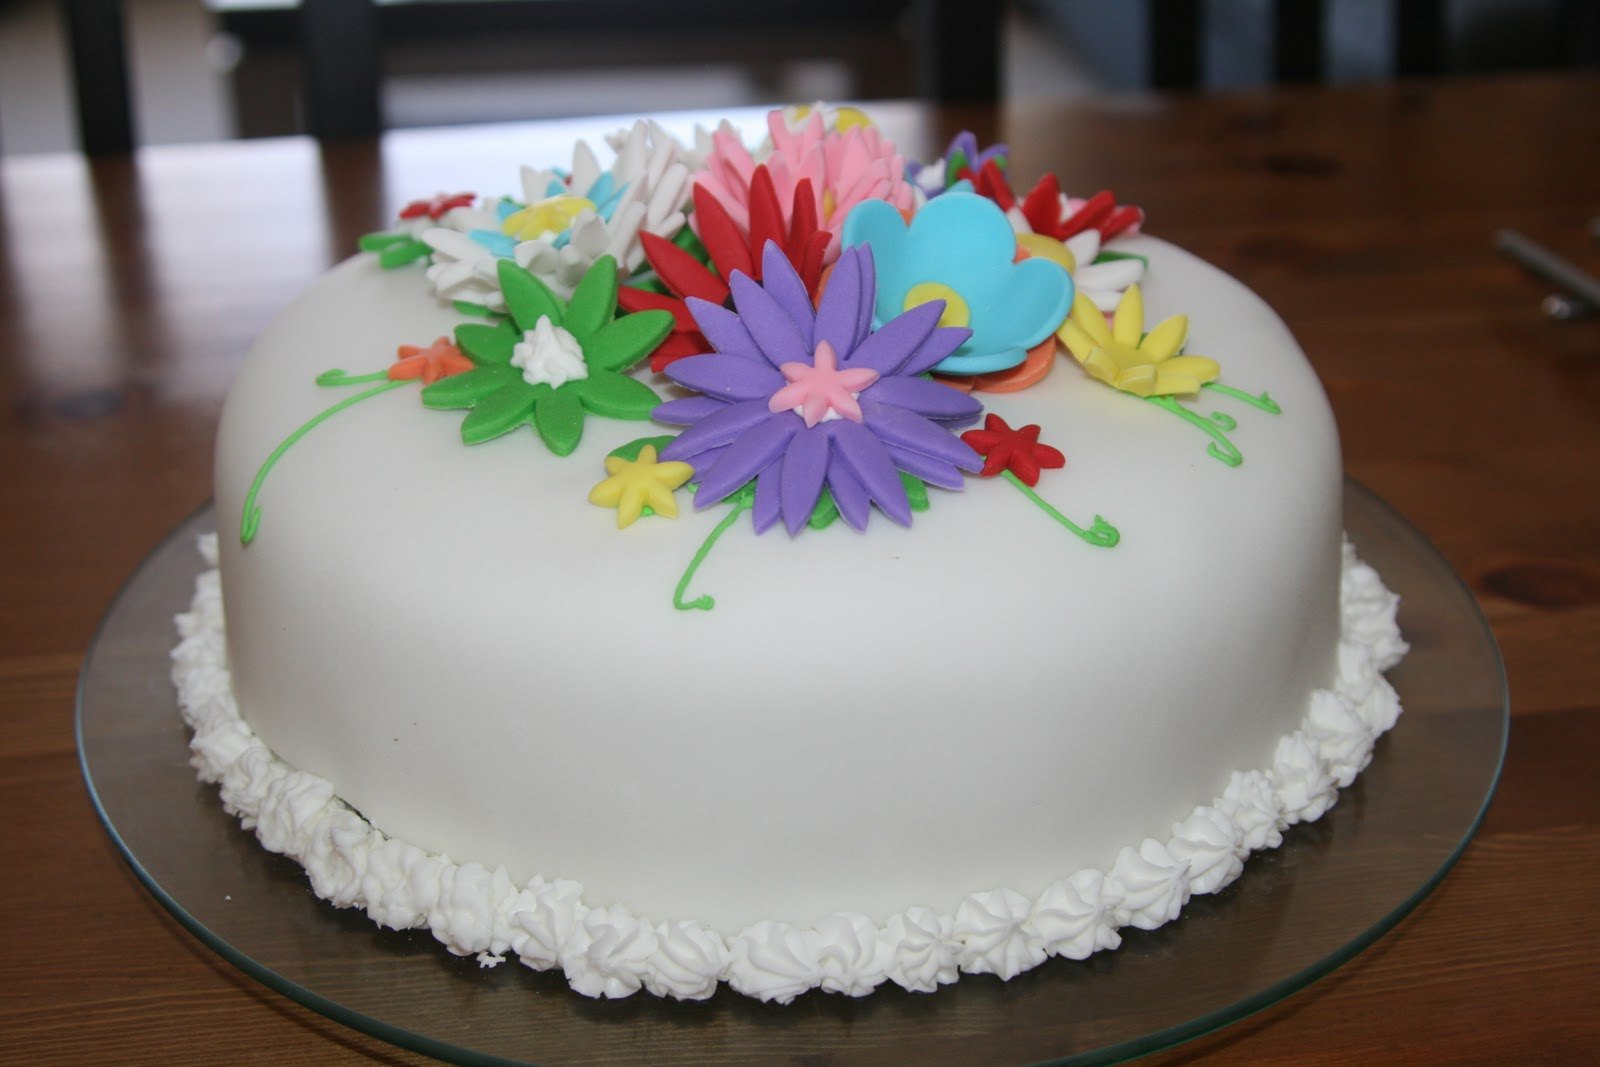 For the Fun of Cooking: Flower Birthday Cake